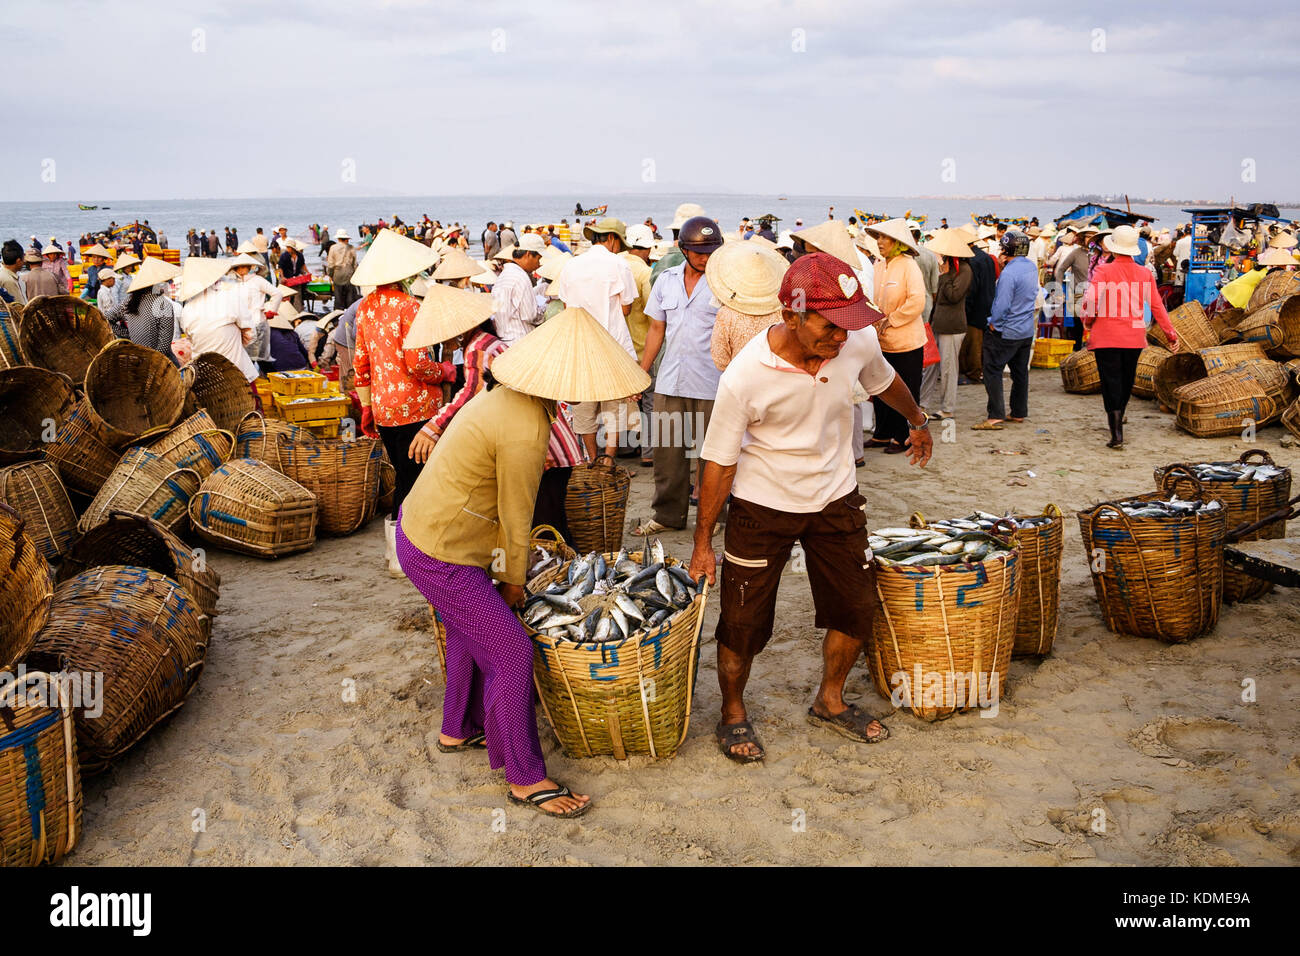 Bamboo conical hat vietnam stock photos bamboo conical for Long beach fish market